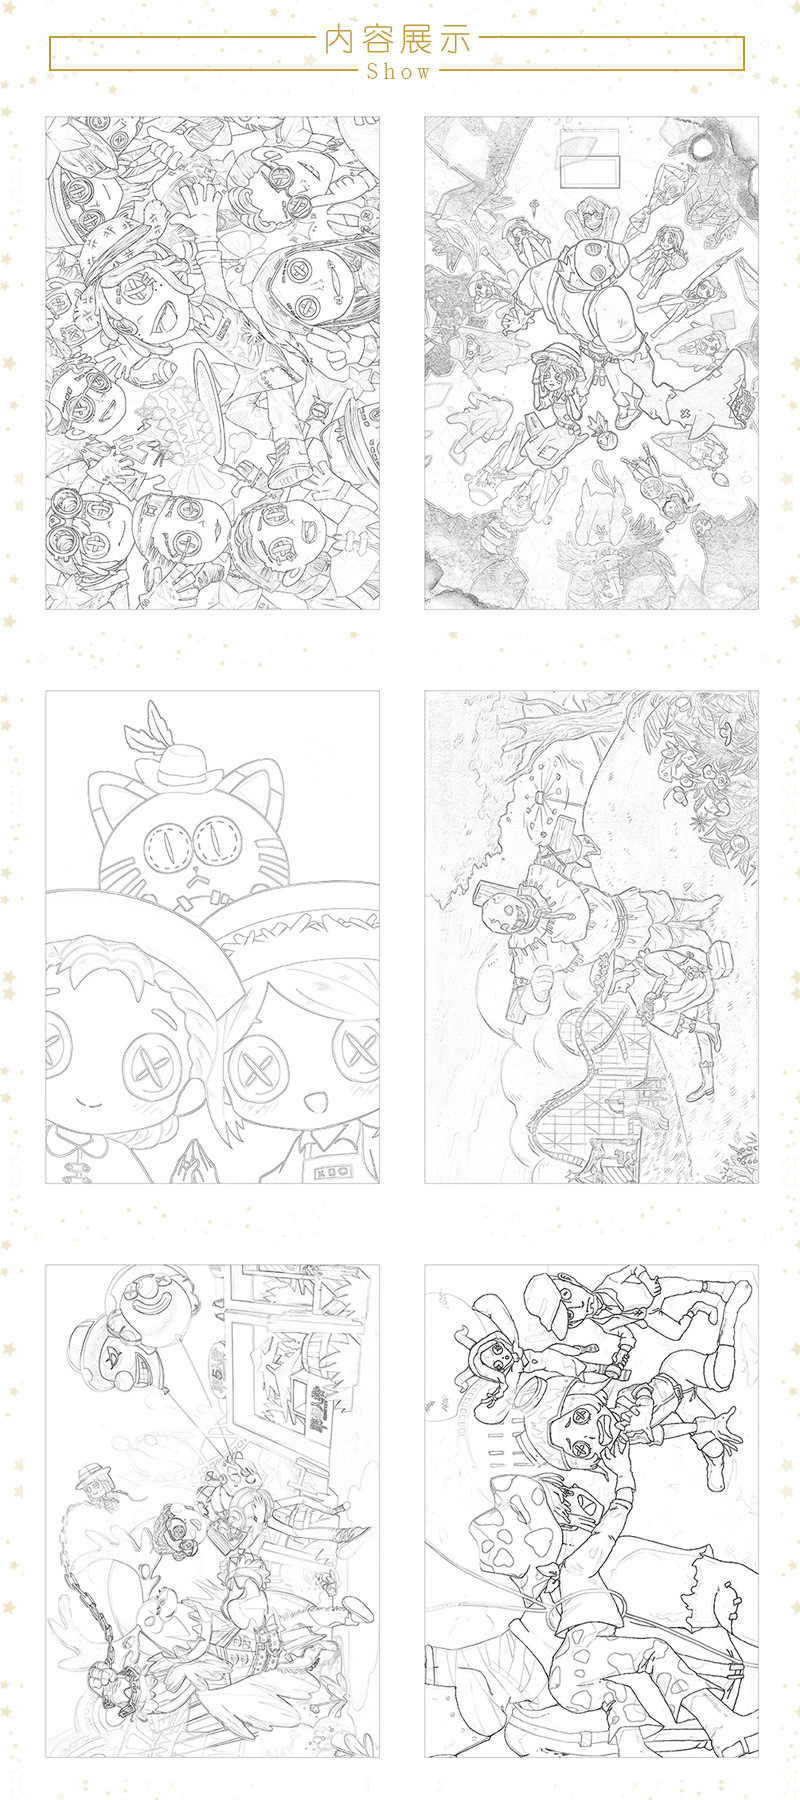 24 Pages Book Anime Identity V Coloring Book For Children Joseph Marta Painting Drawing Antistress Books A5 Imitated Copy Book Drawing Toys Aliexpress